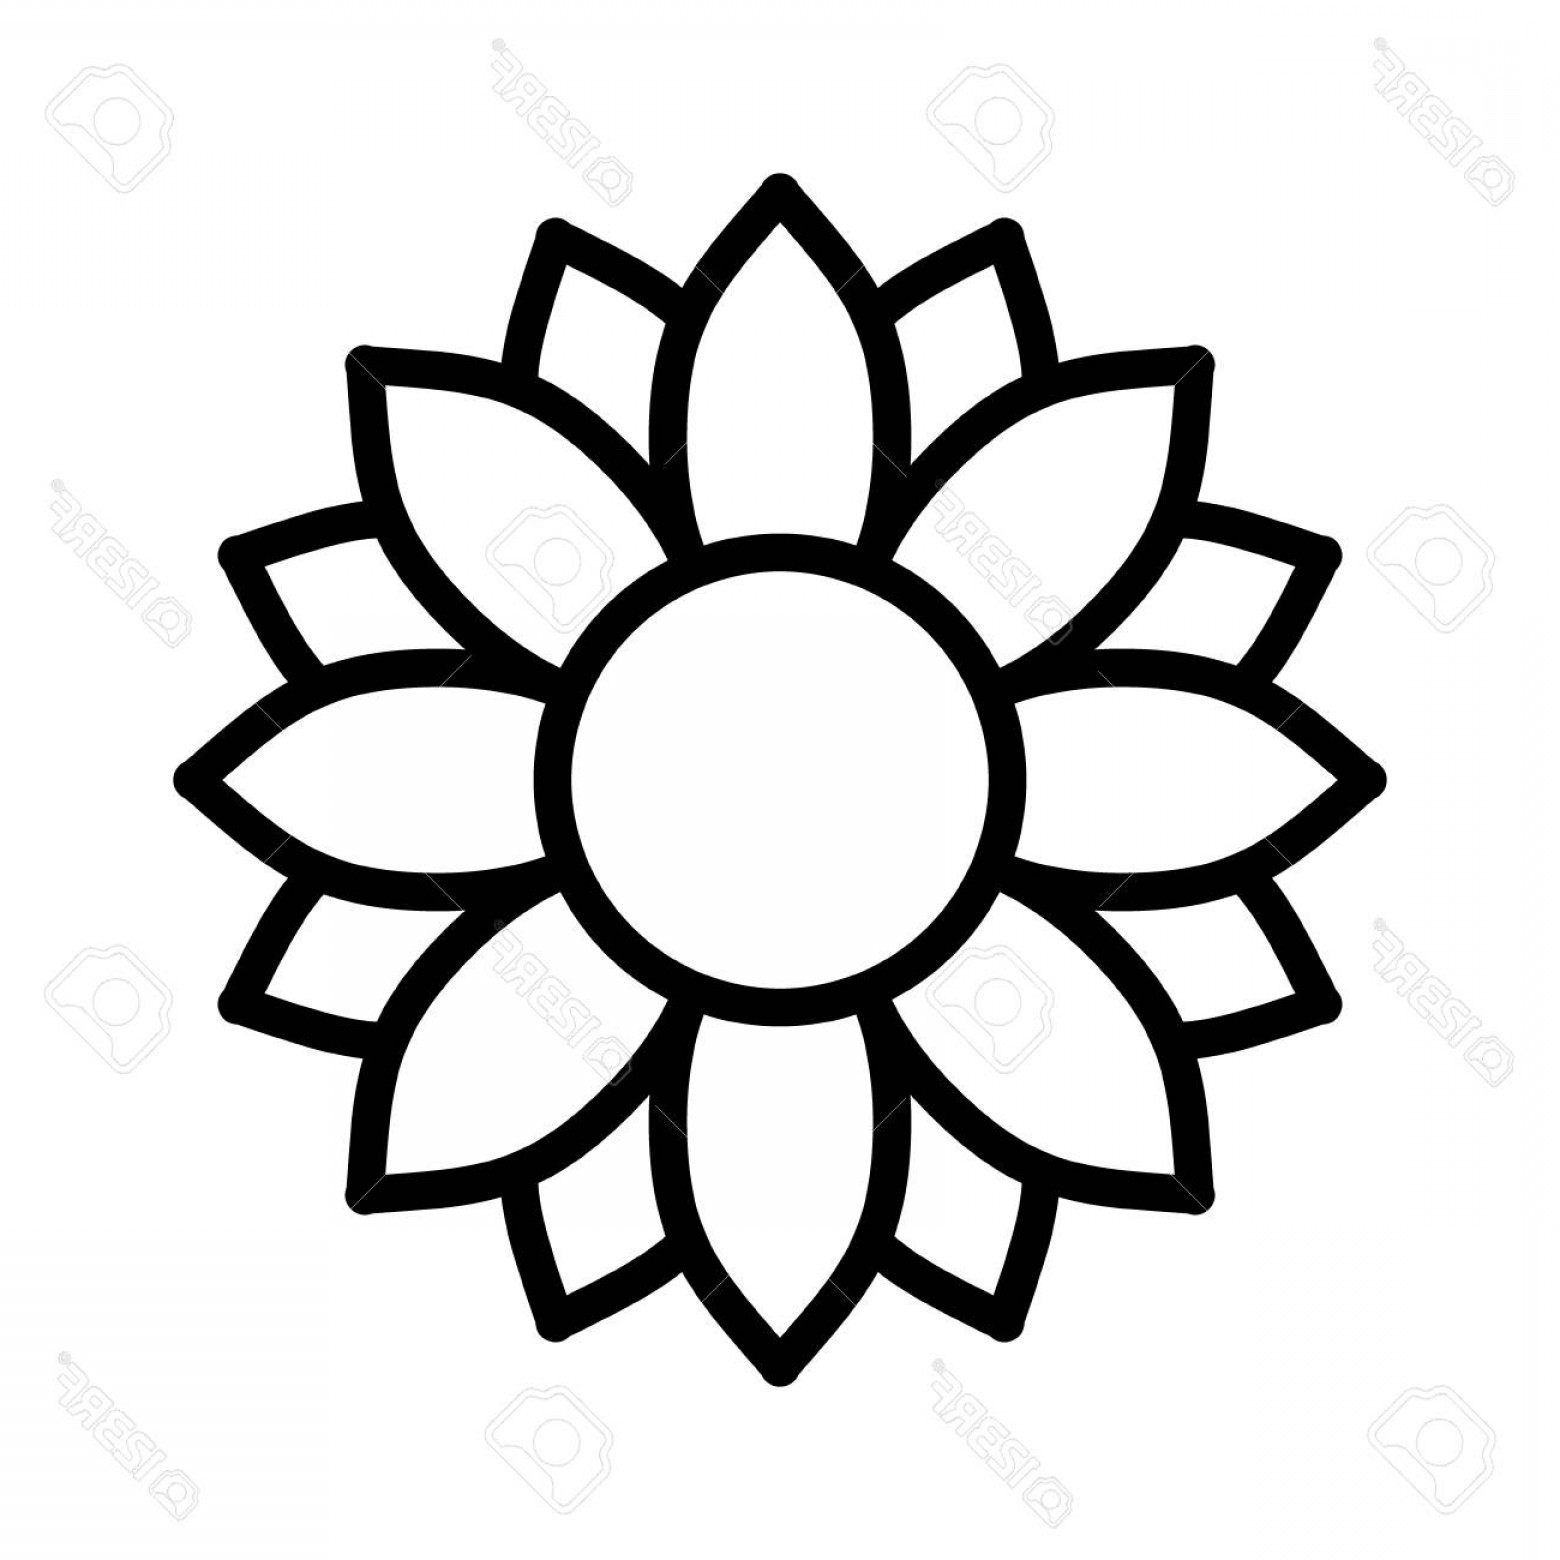 Icon Of Flower Vectors: Photostock Vector Helianthus Or Sunflower Blossom Line Art Vector Icon For Flower Apps And Websites